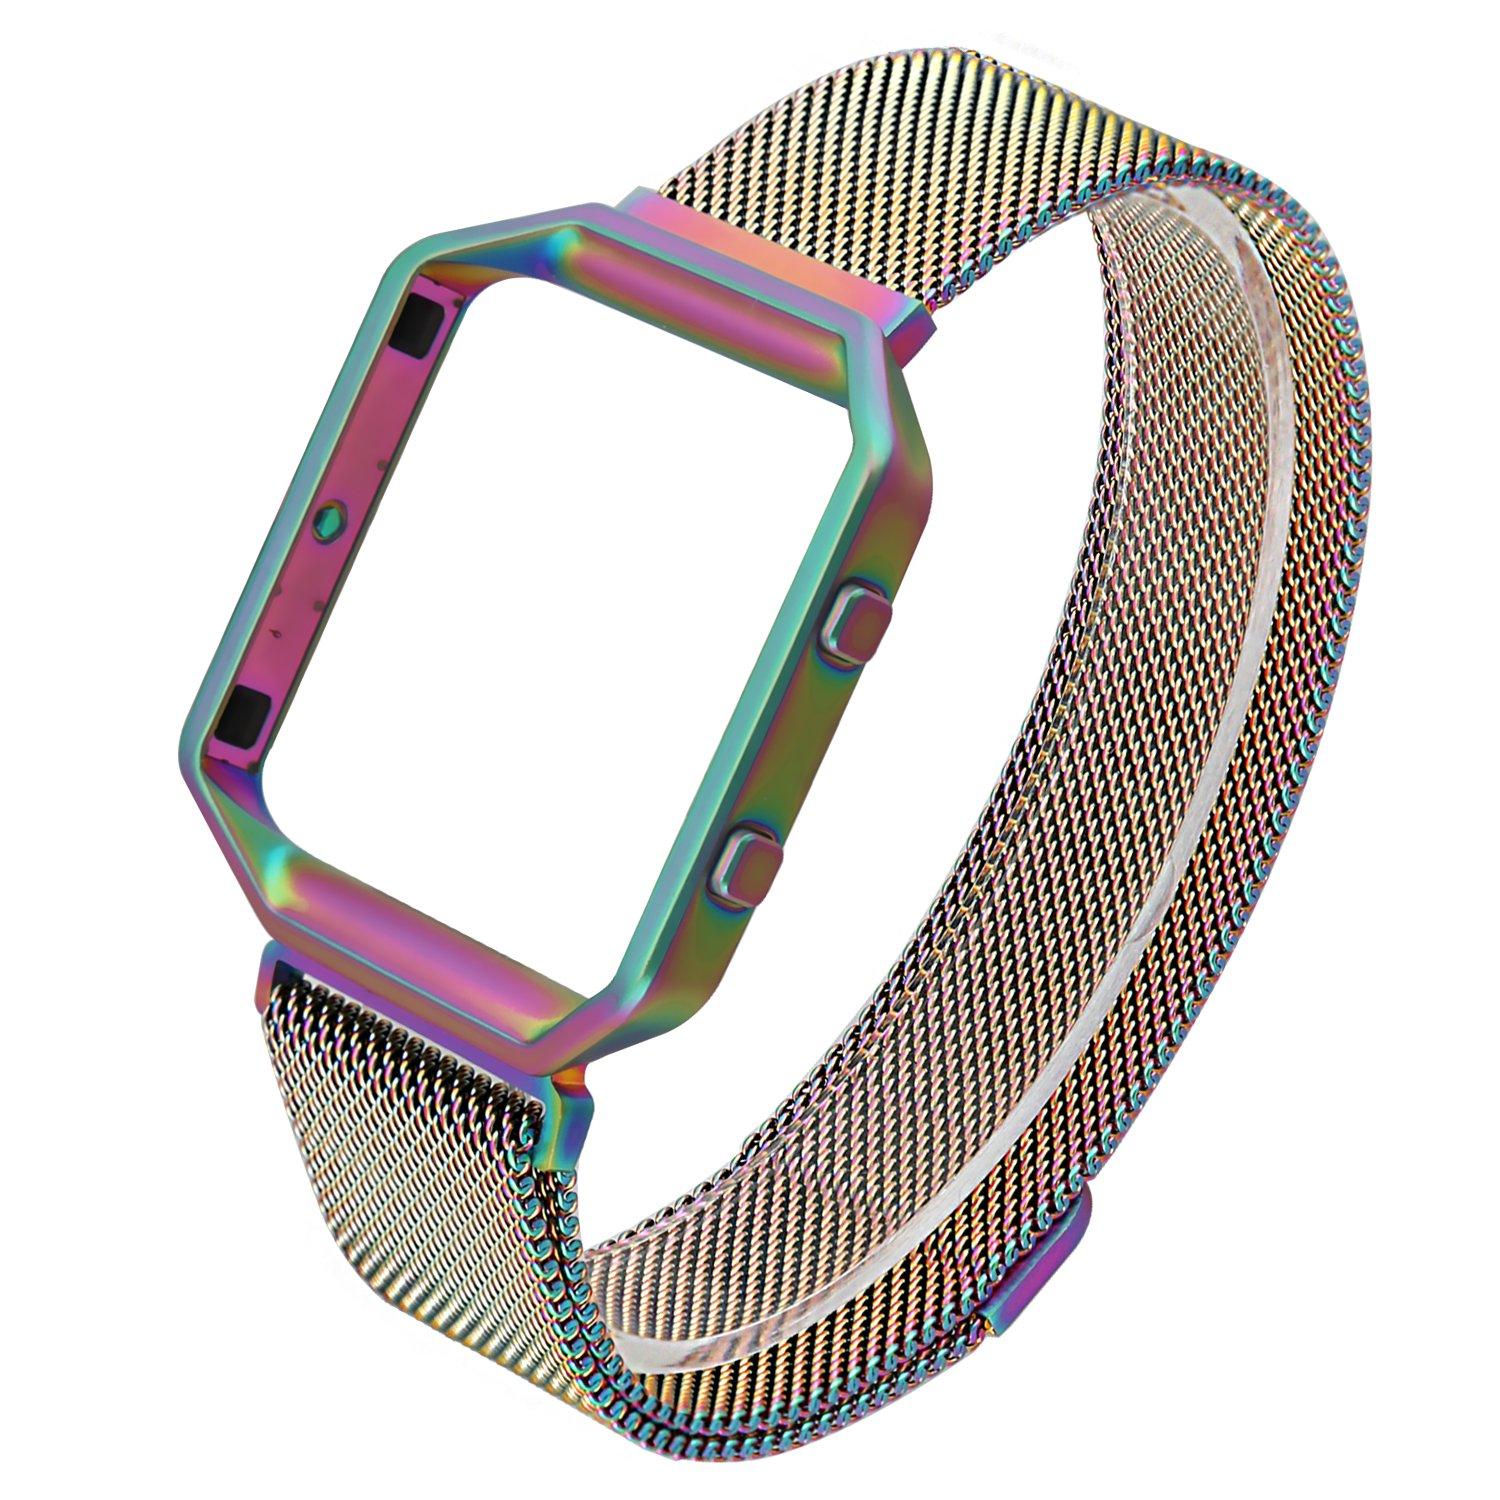 ESeekGo For Fitbit Blaze Band with Metal Frame, Milanese Loop Bands Replacement Stainless Steel Bracelet Strap for Fitbit Blaze Large (No Tracker, Colorful)